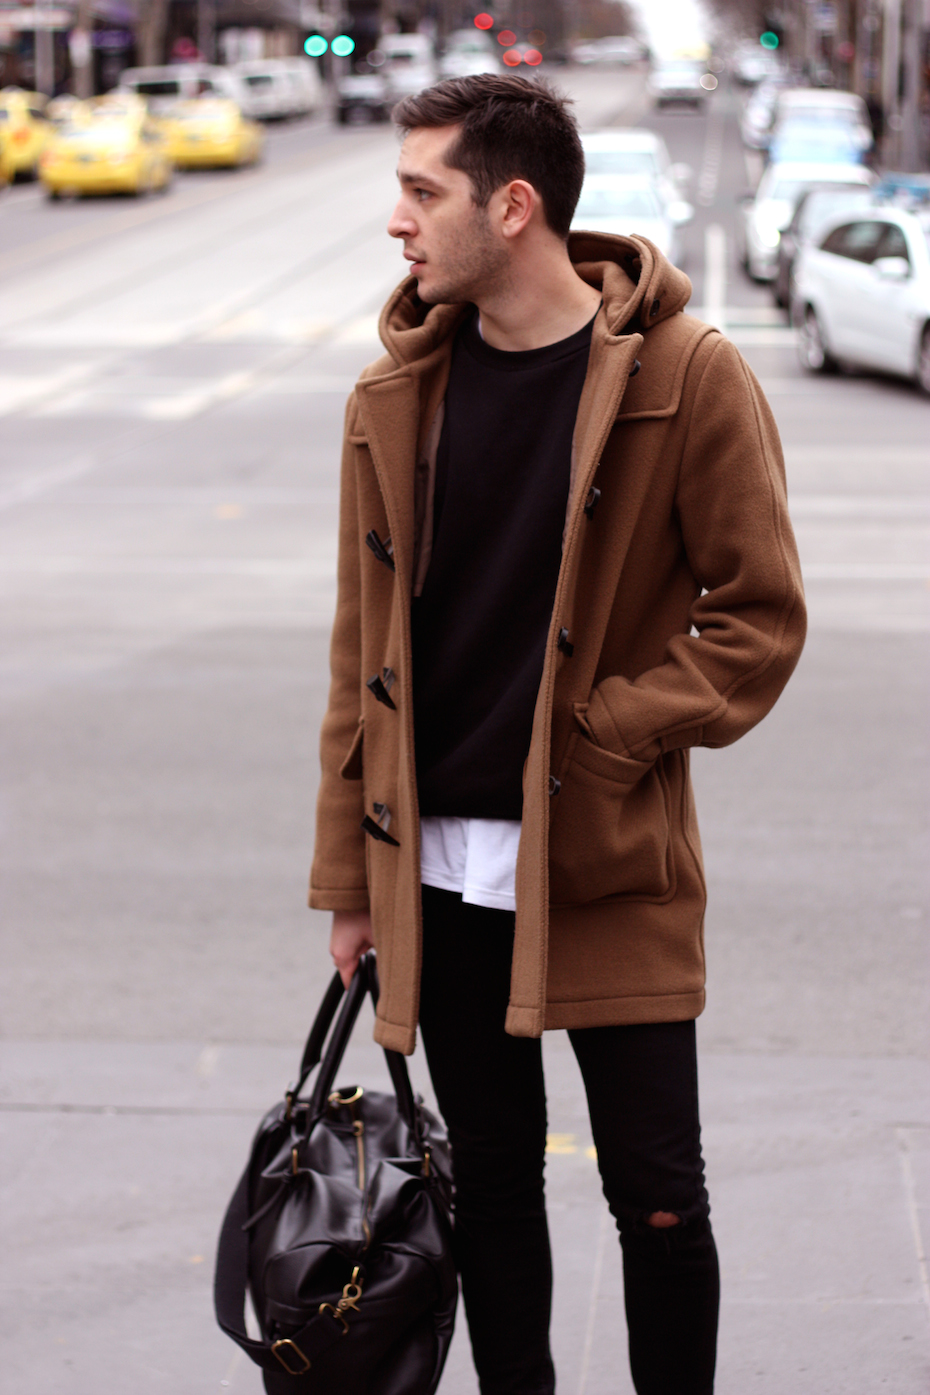 """Vic: Joe Duran, call centre worker, Bourke St. """"Minimalism and effortless describe my style.""""  <a href="""" http://www.marythamphotography.weebly.com/"""" target=""""_blank""""> Photo: Mary Tham </a>"""